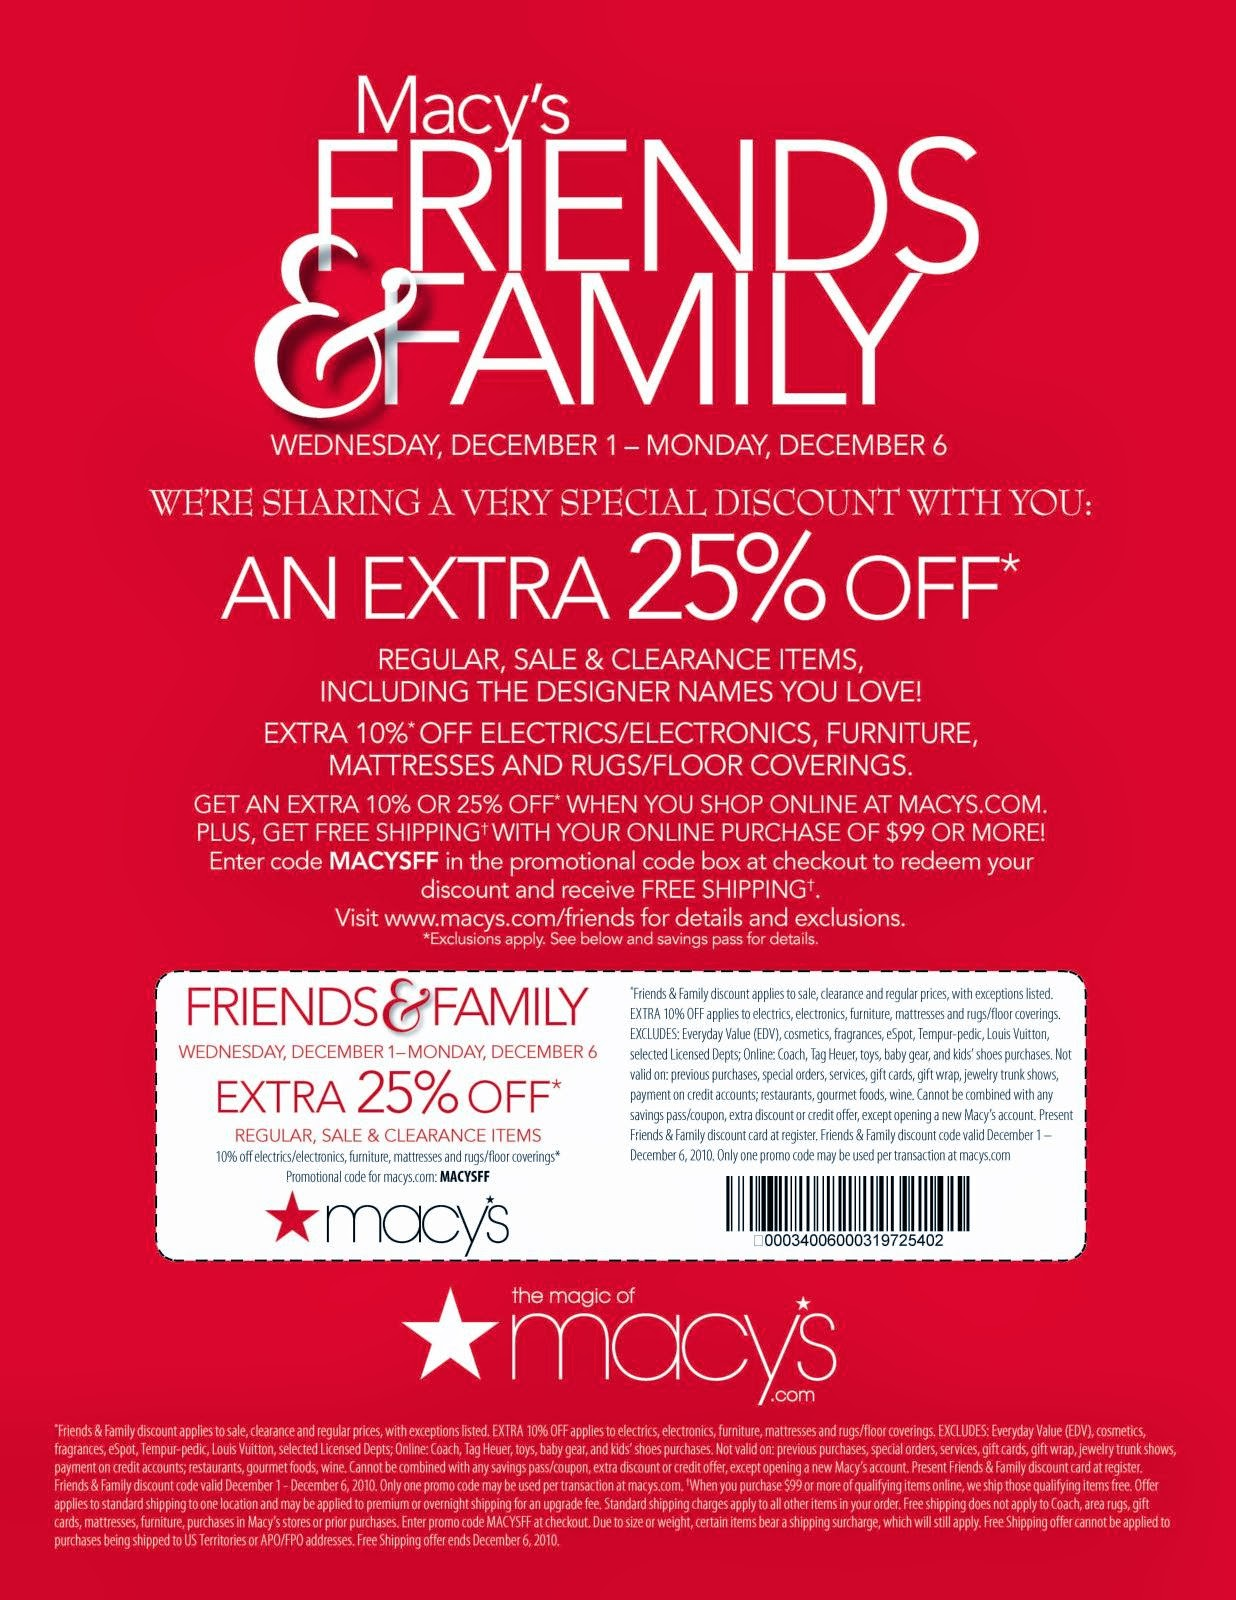 picture relating to Tillys Coupon Printable identify Macys coupon nov 2018 printable - Las vegas present promotions 2018